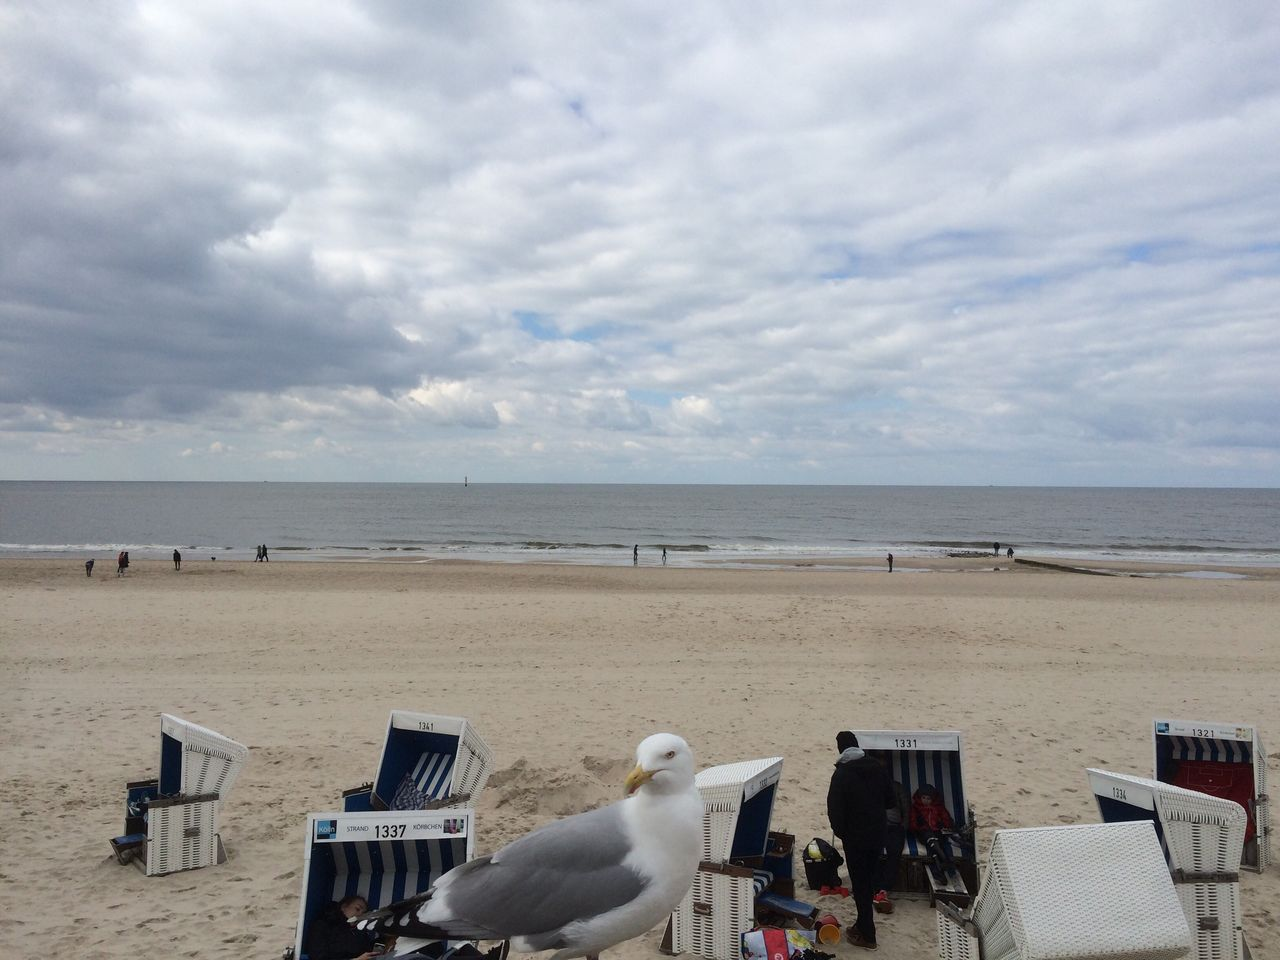 sea, beach, horizon over water, sky, nature, water, chair, scenics, cloud - sky, tranquility, day, sand, outdoors, tranquil scene, beauty in nature, animal themes, vacations, seat, real people, sitting, mammal